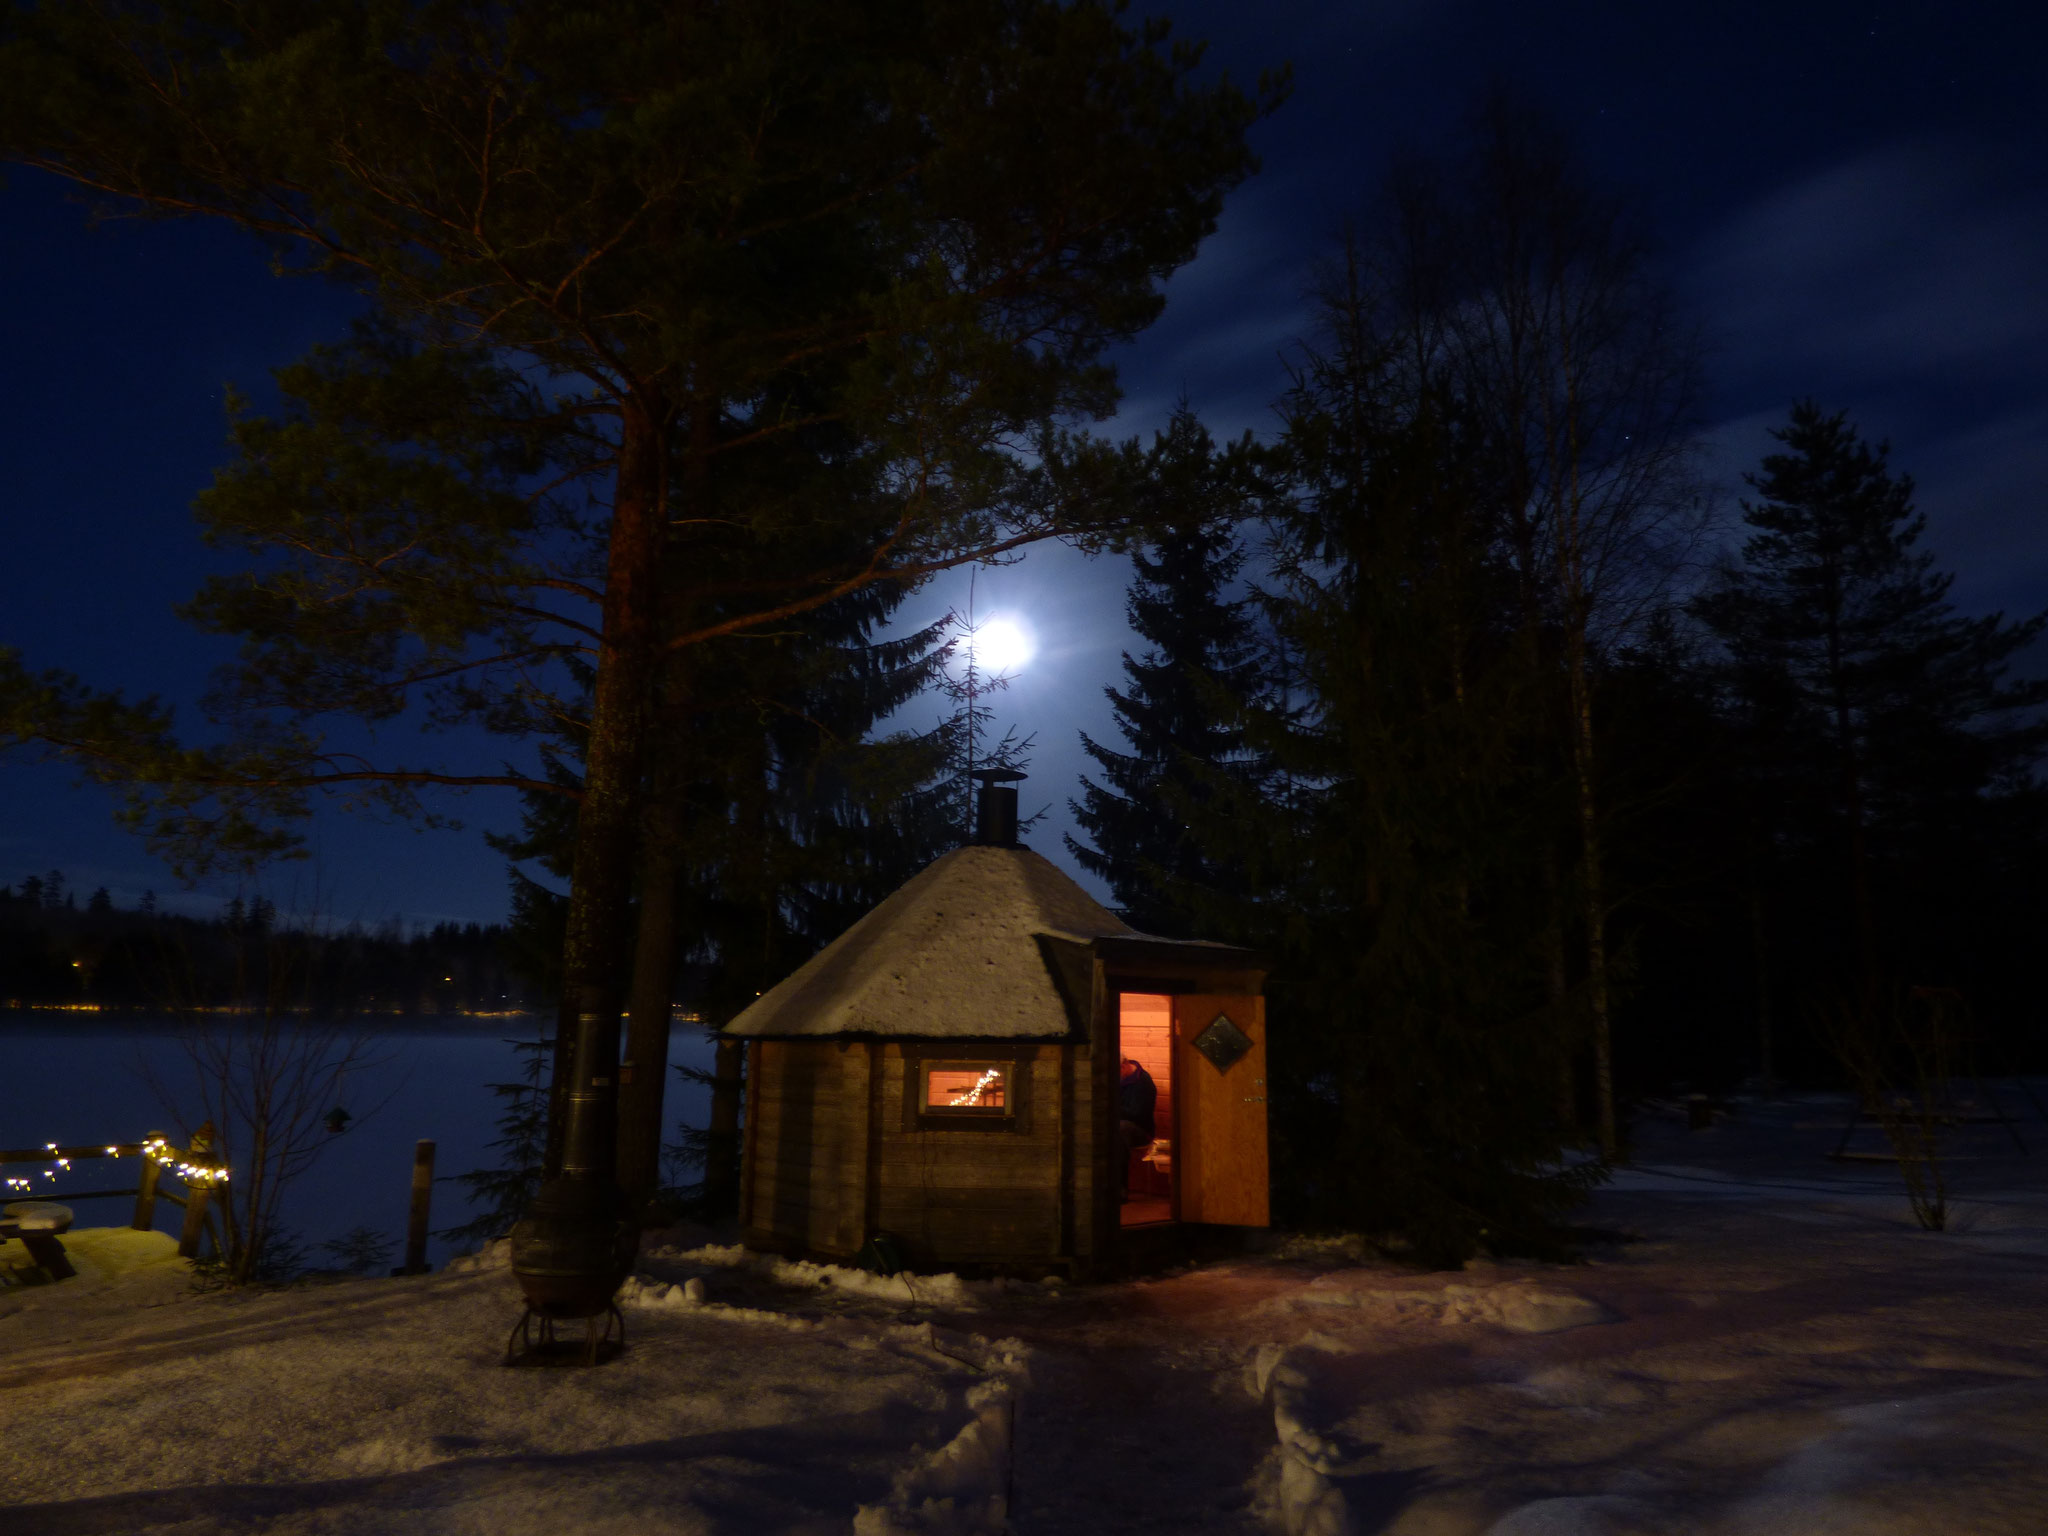 fullmoon over barbecue hut